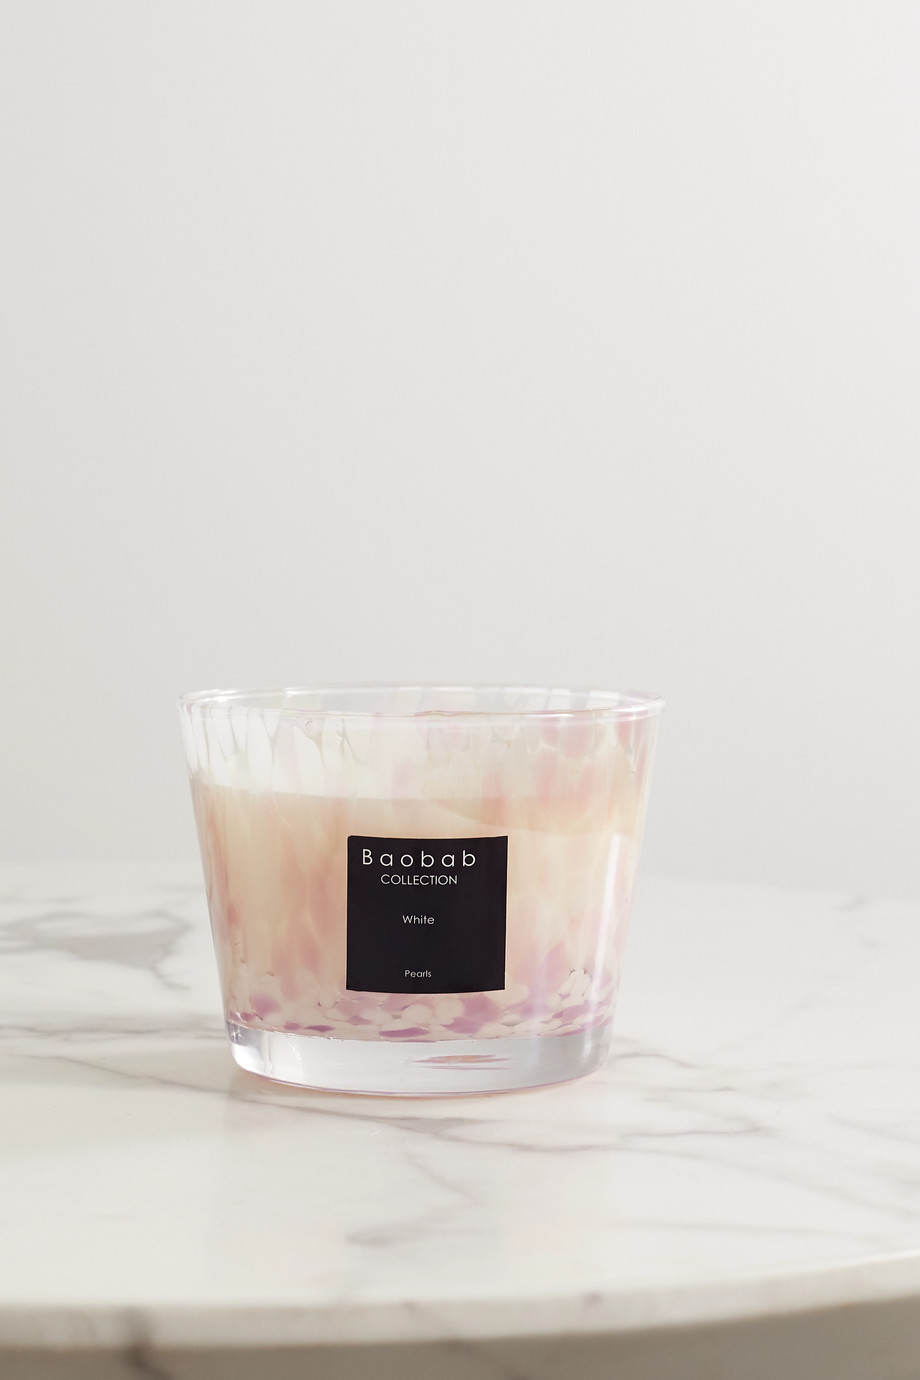 Baobab Collection White Pearls Max 10 scented candle, 1.3kg